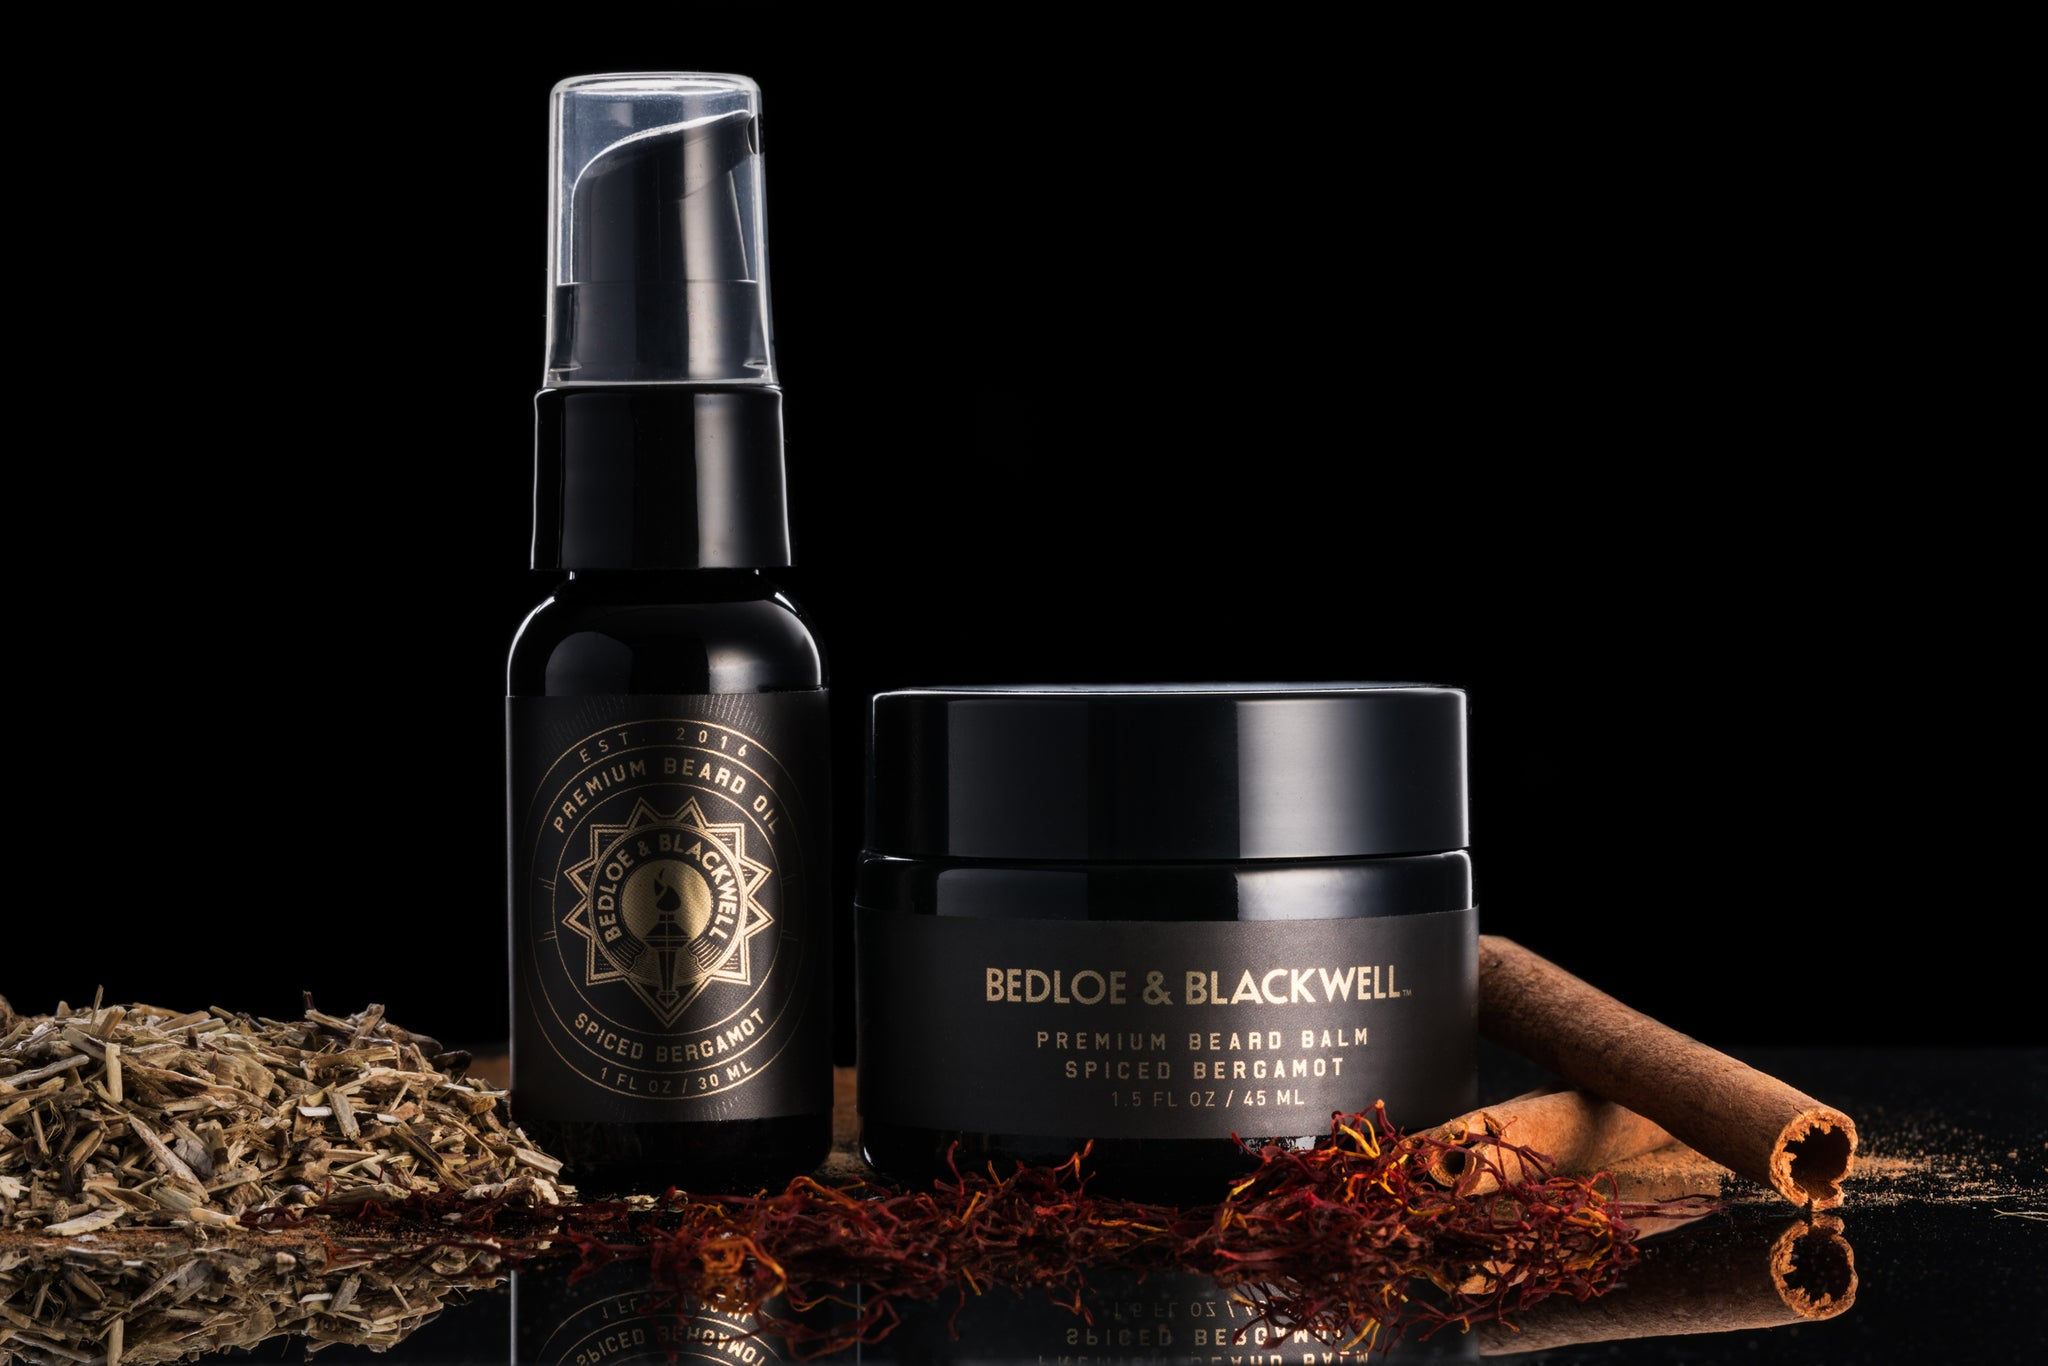 Spiced Bergamot Beard Care Set